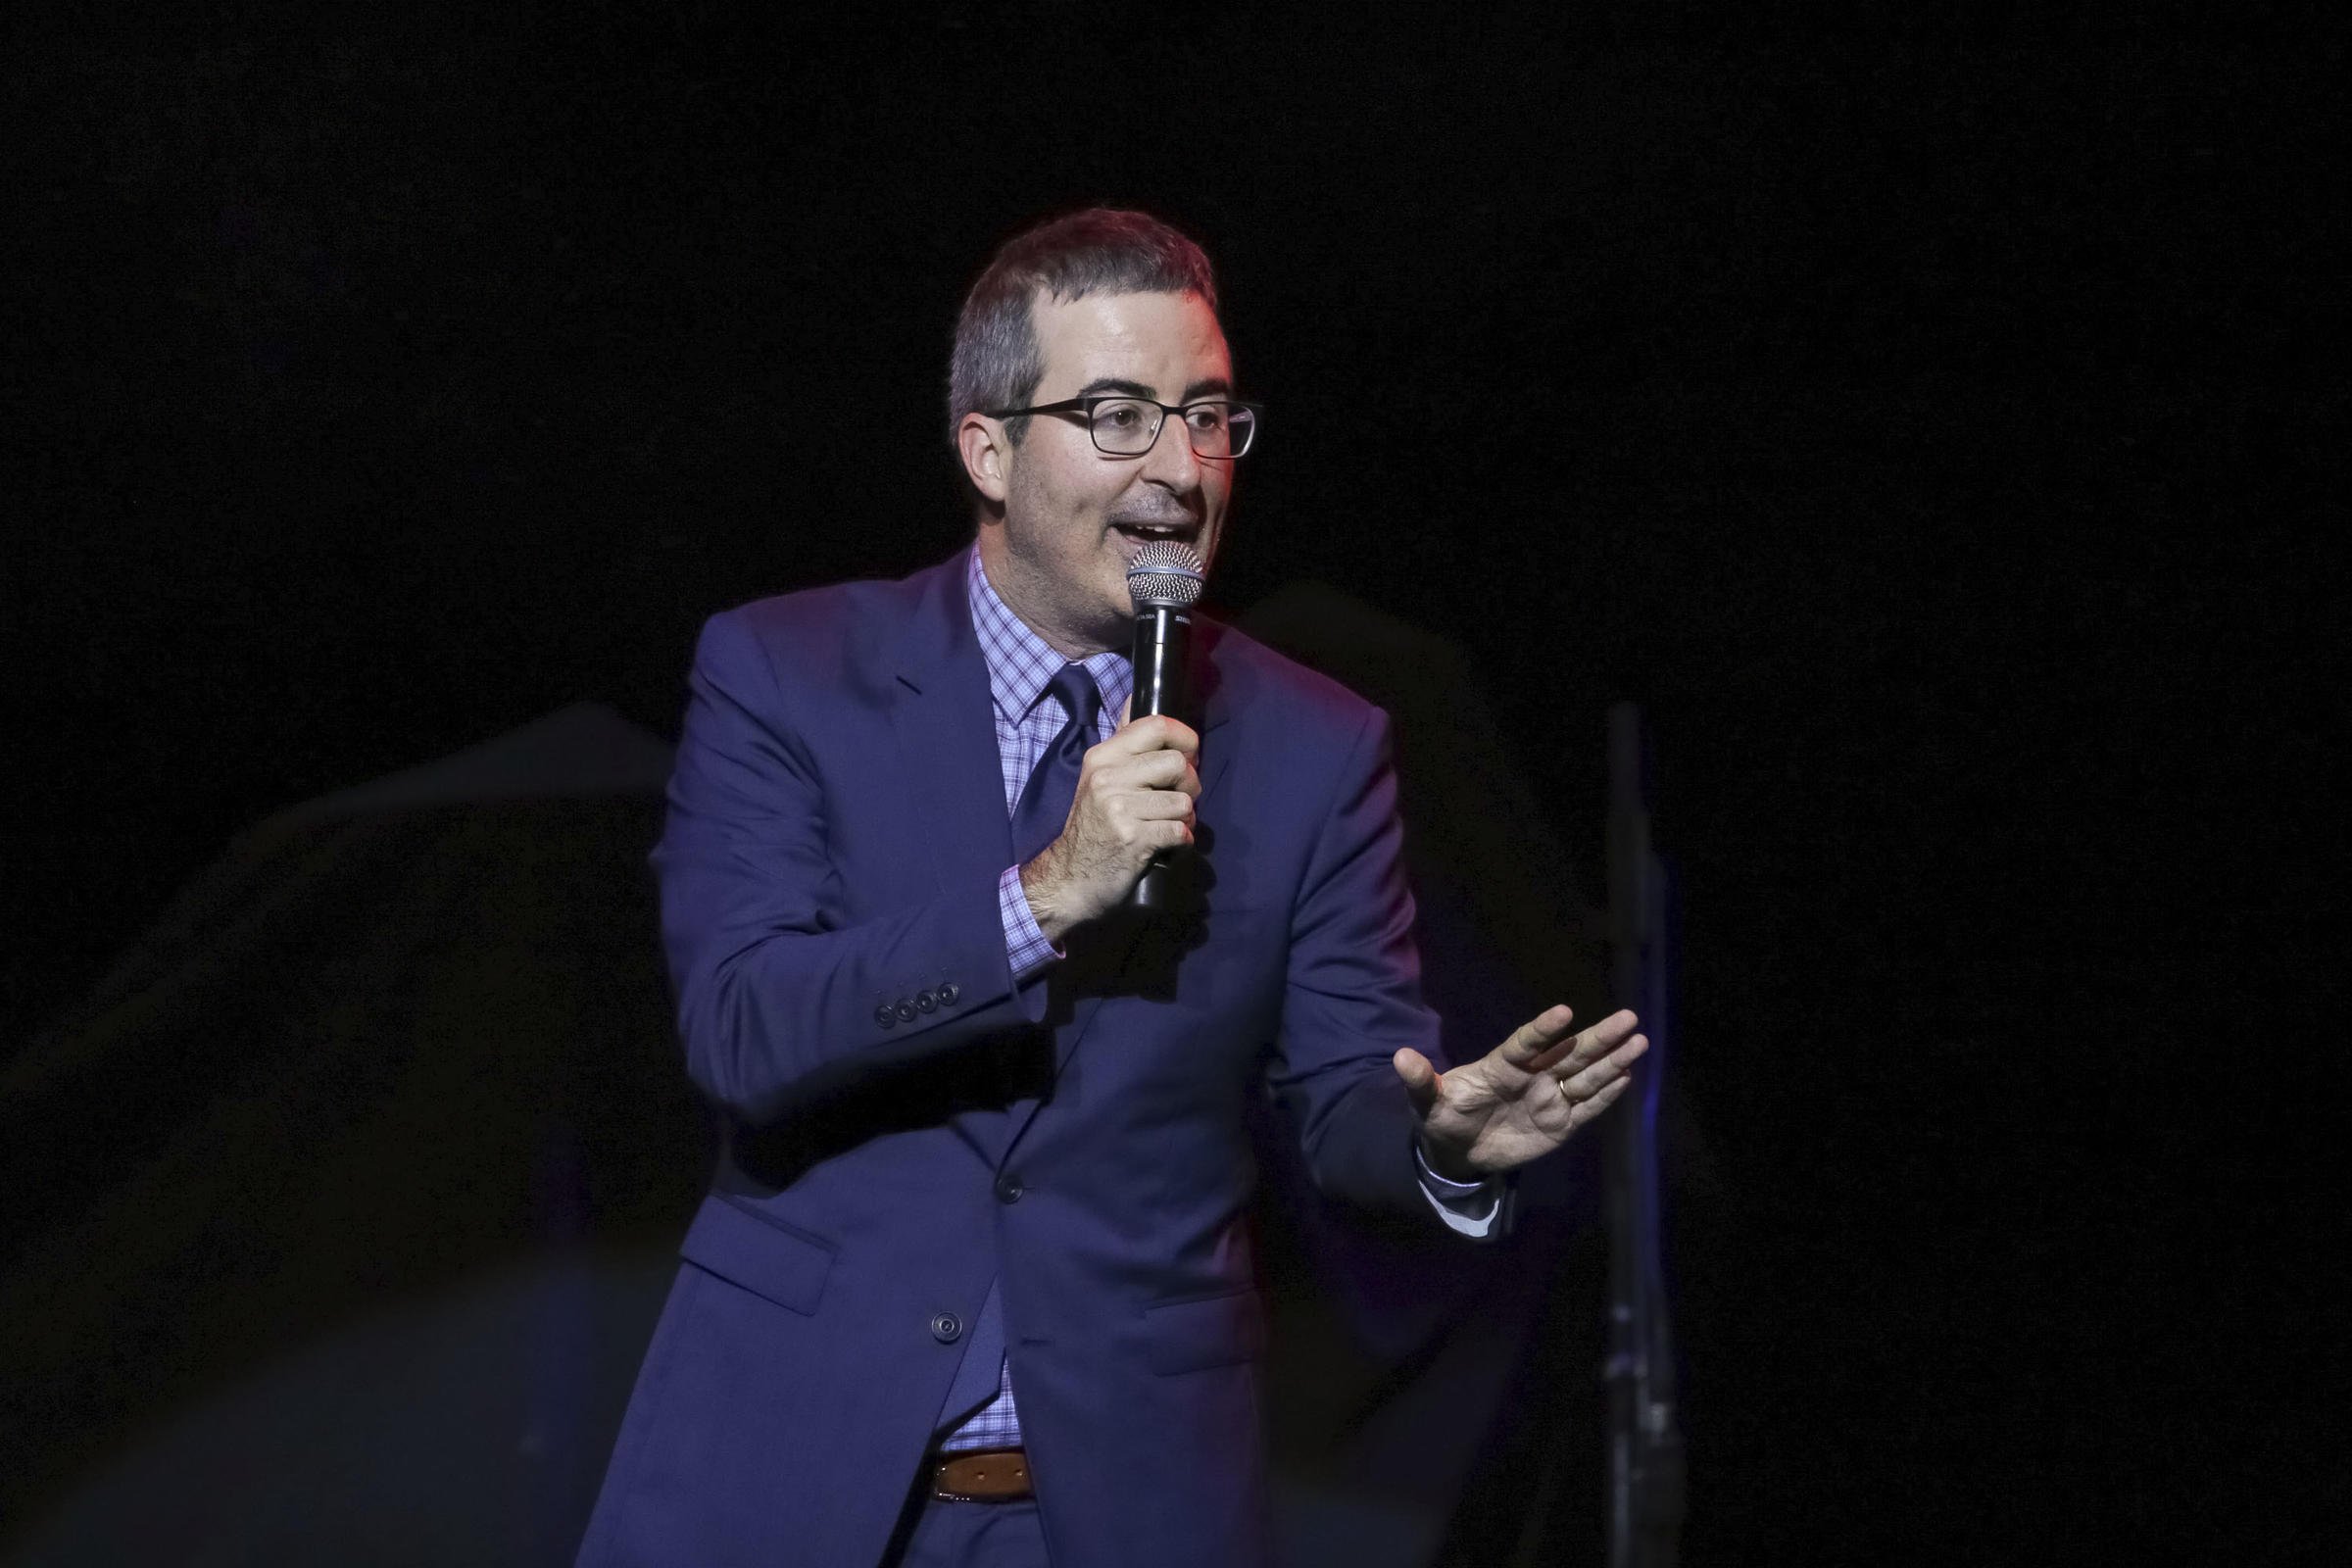 A coal kingpin's defamation lawsuit against John Oliver has been dismissed